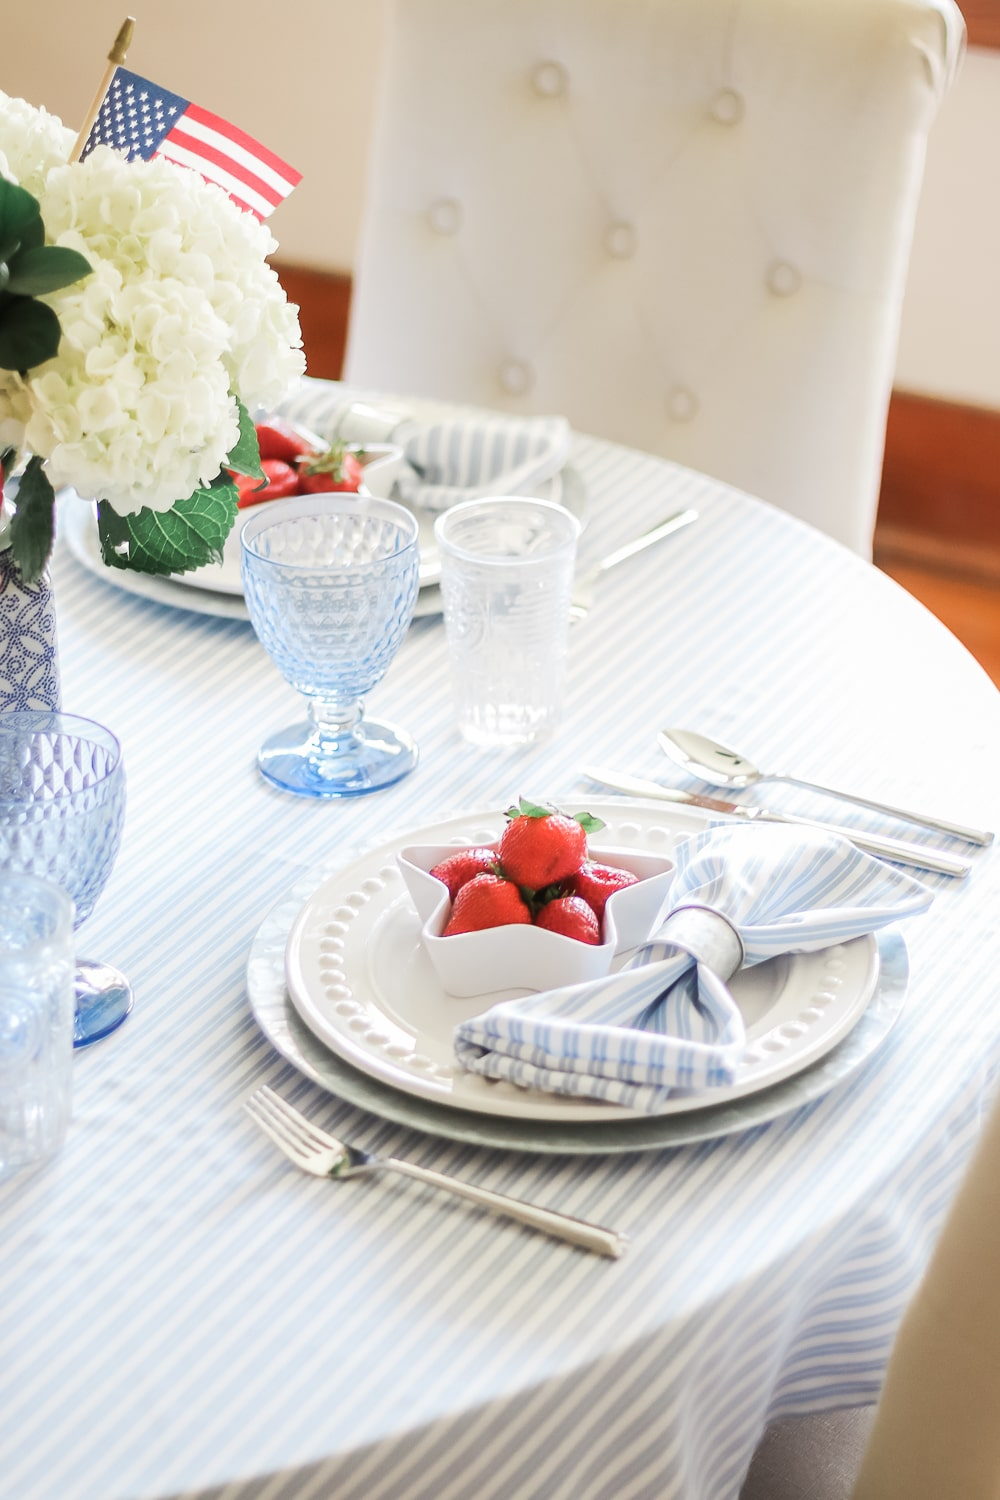 4th of July table decor idea by blogger Stephanie Ziajka on Diary of a Debutante